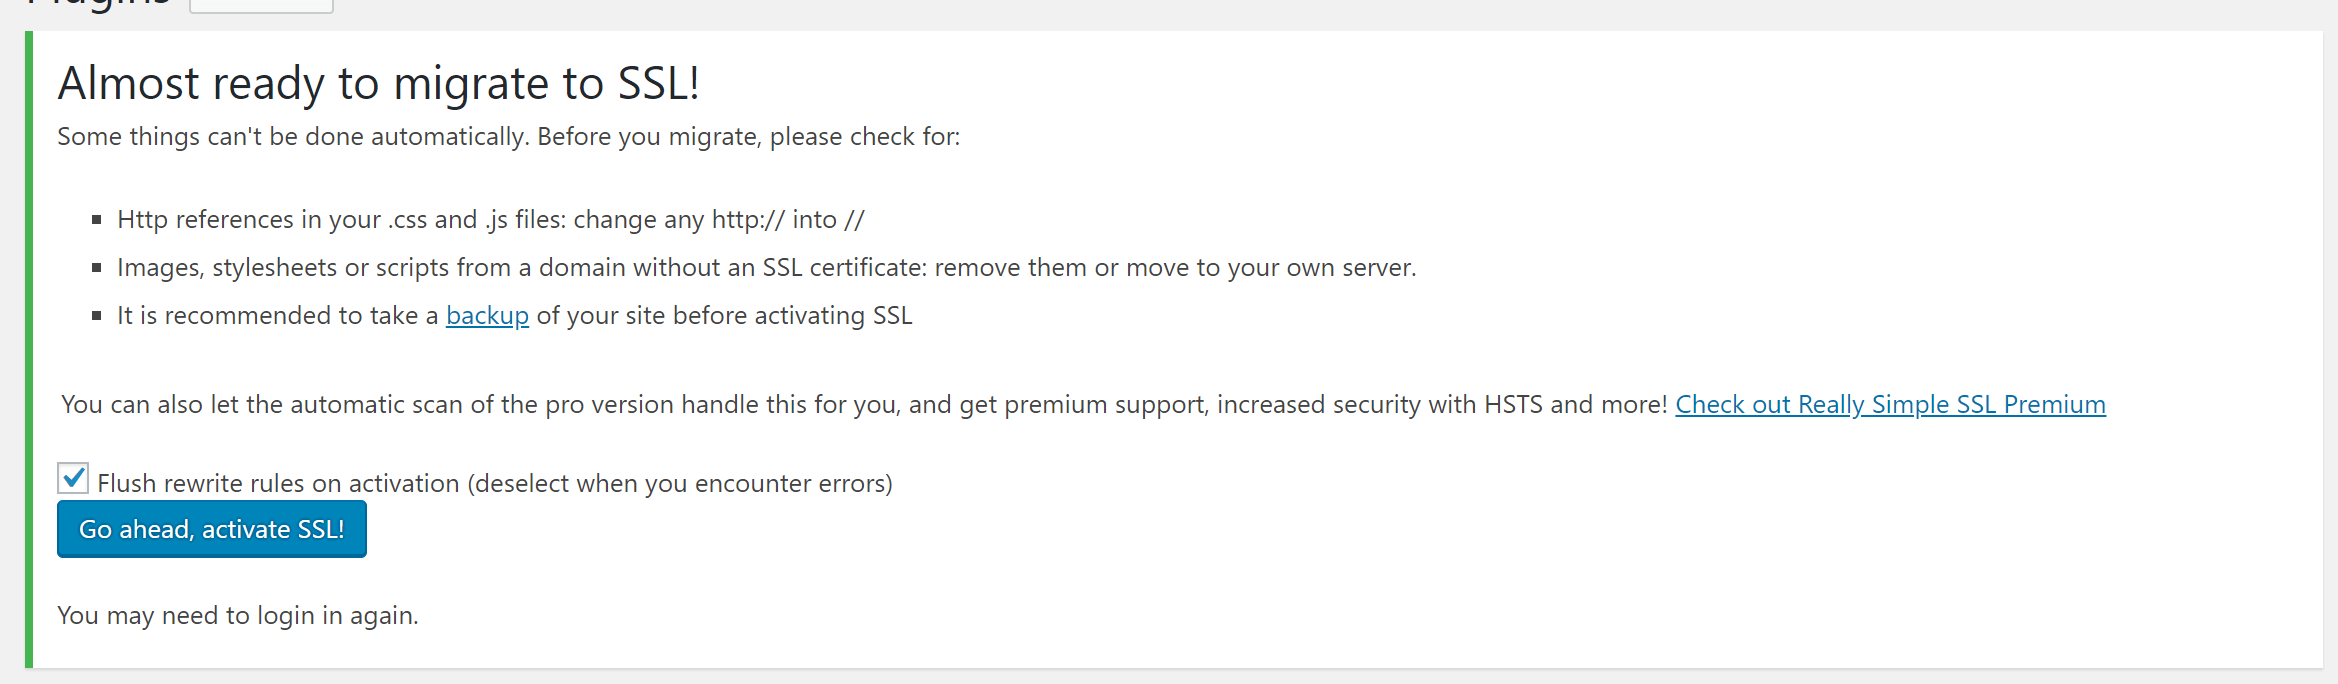 How To Use The Really Simple Ssl Plugin To Fix Mixed Content